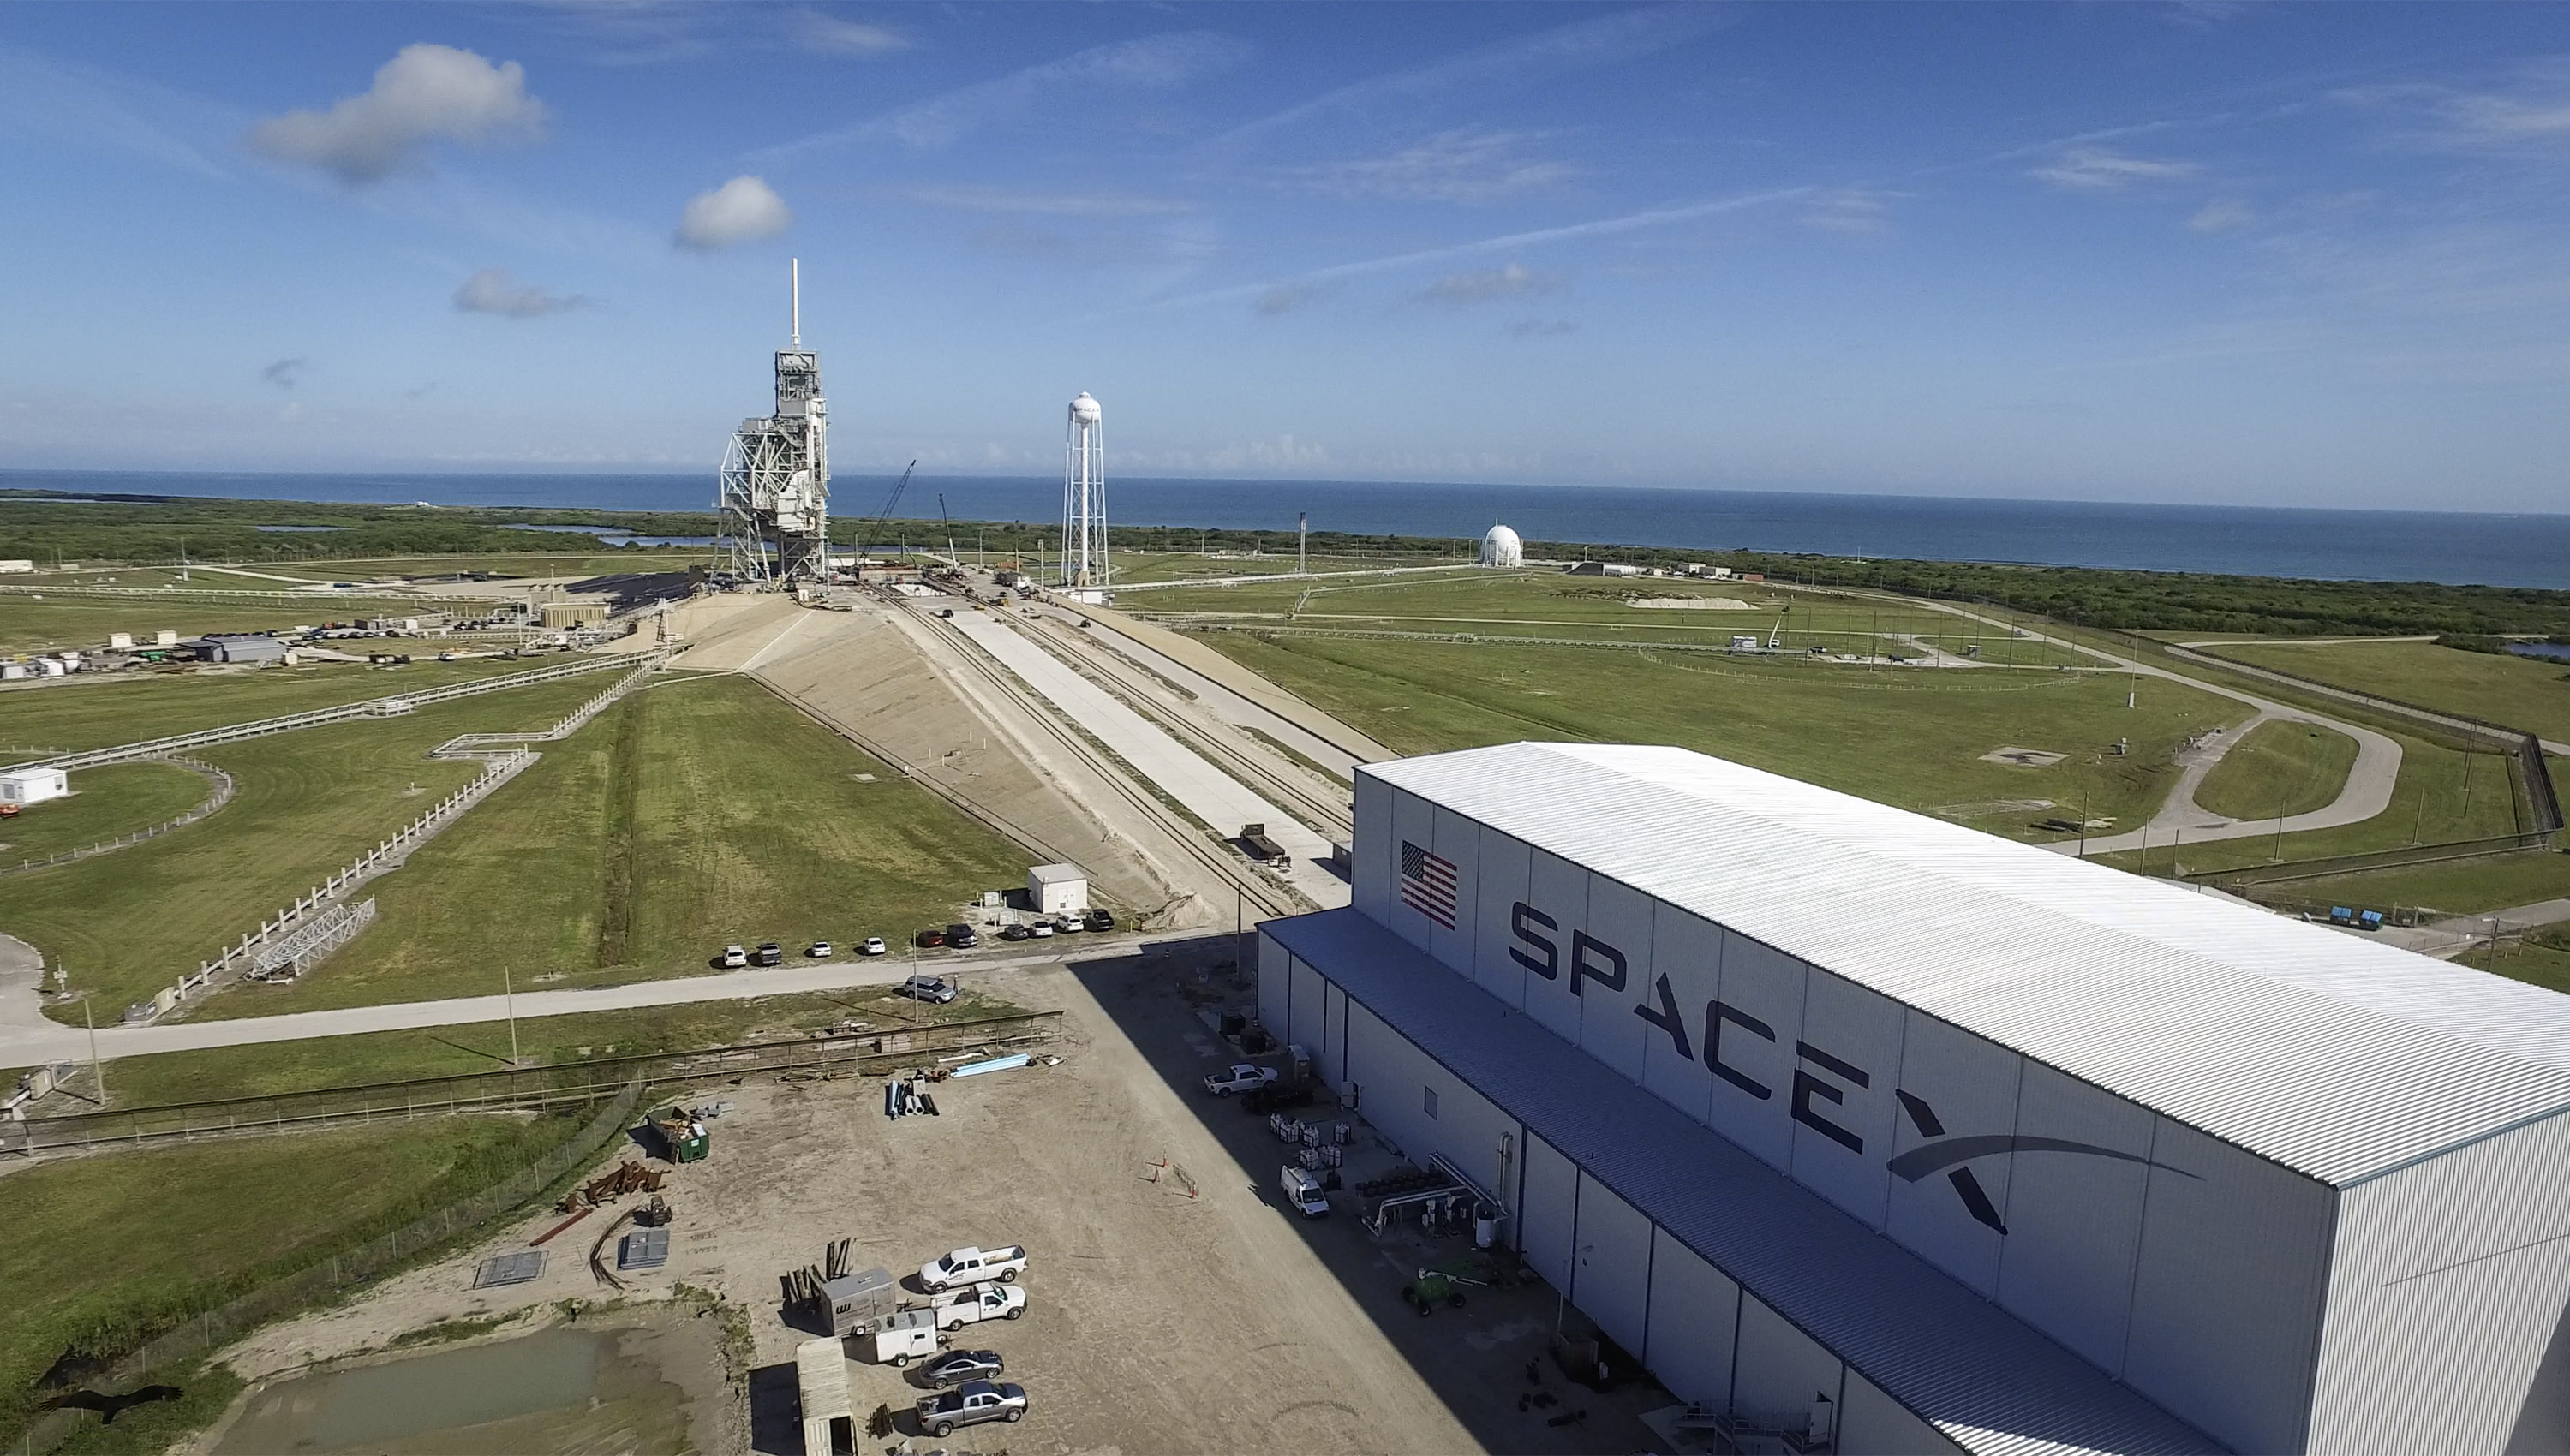 launch pad 39a modifications for spacex launches